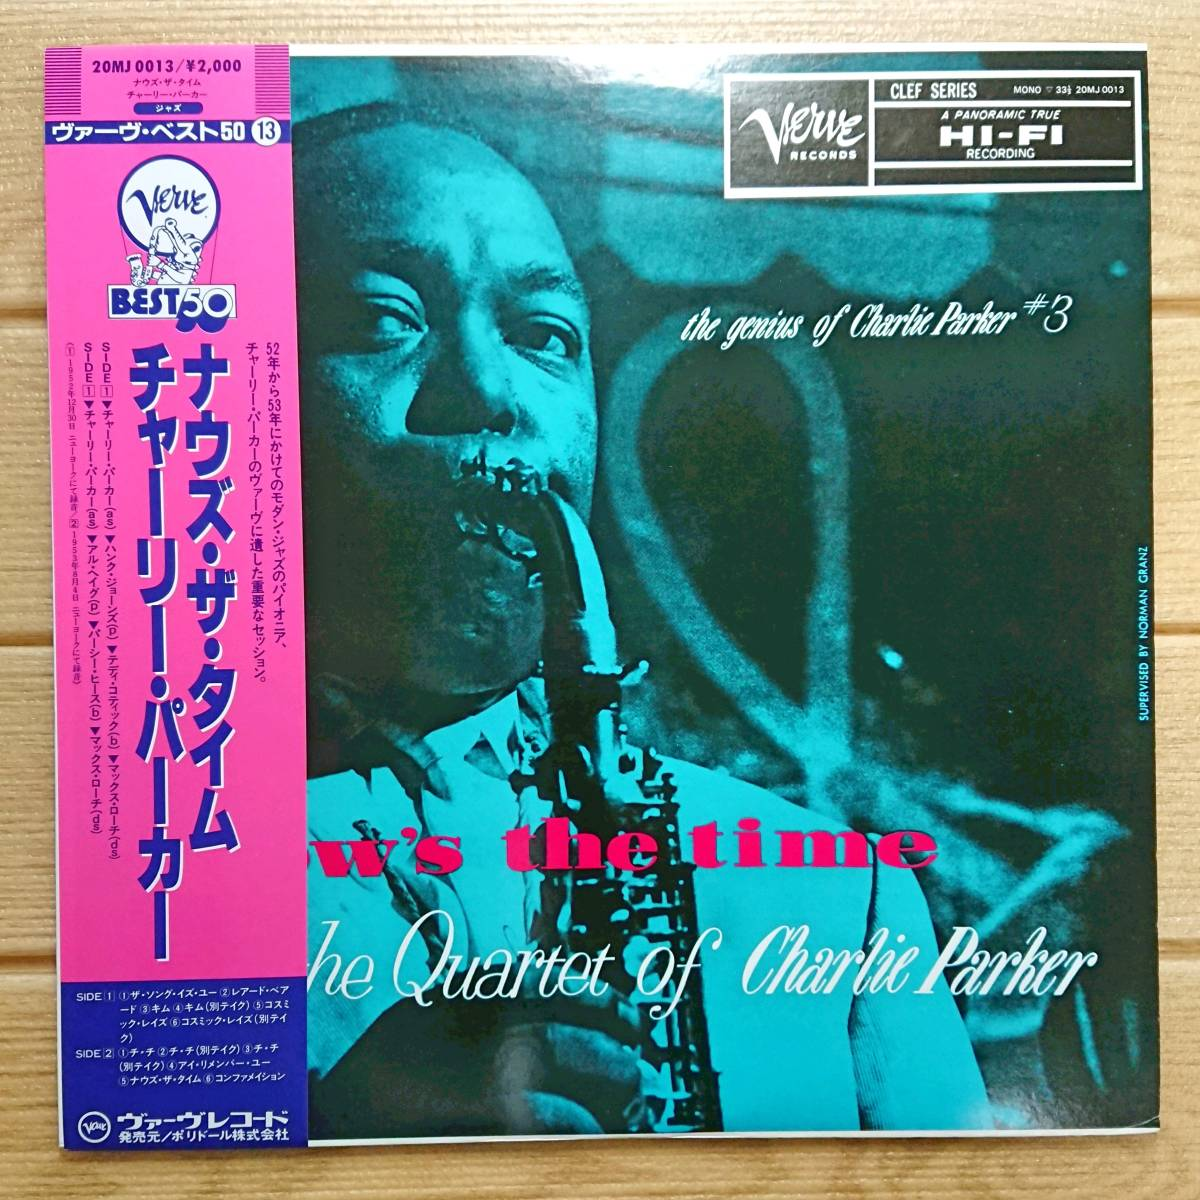 Charlie Parker(as)/Now's The Time チャーリー・パーカー(as)/ナウズ・ザ・タイム【国内帯付美盤】_画像1